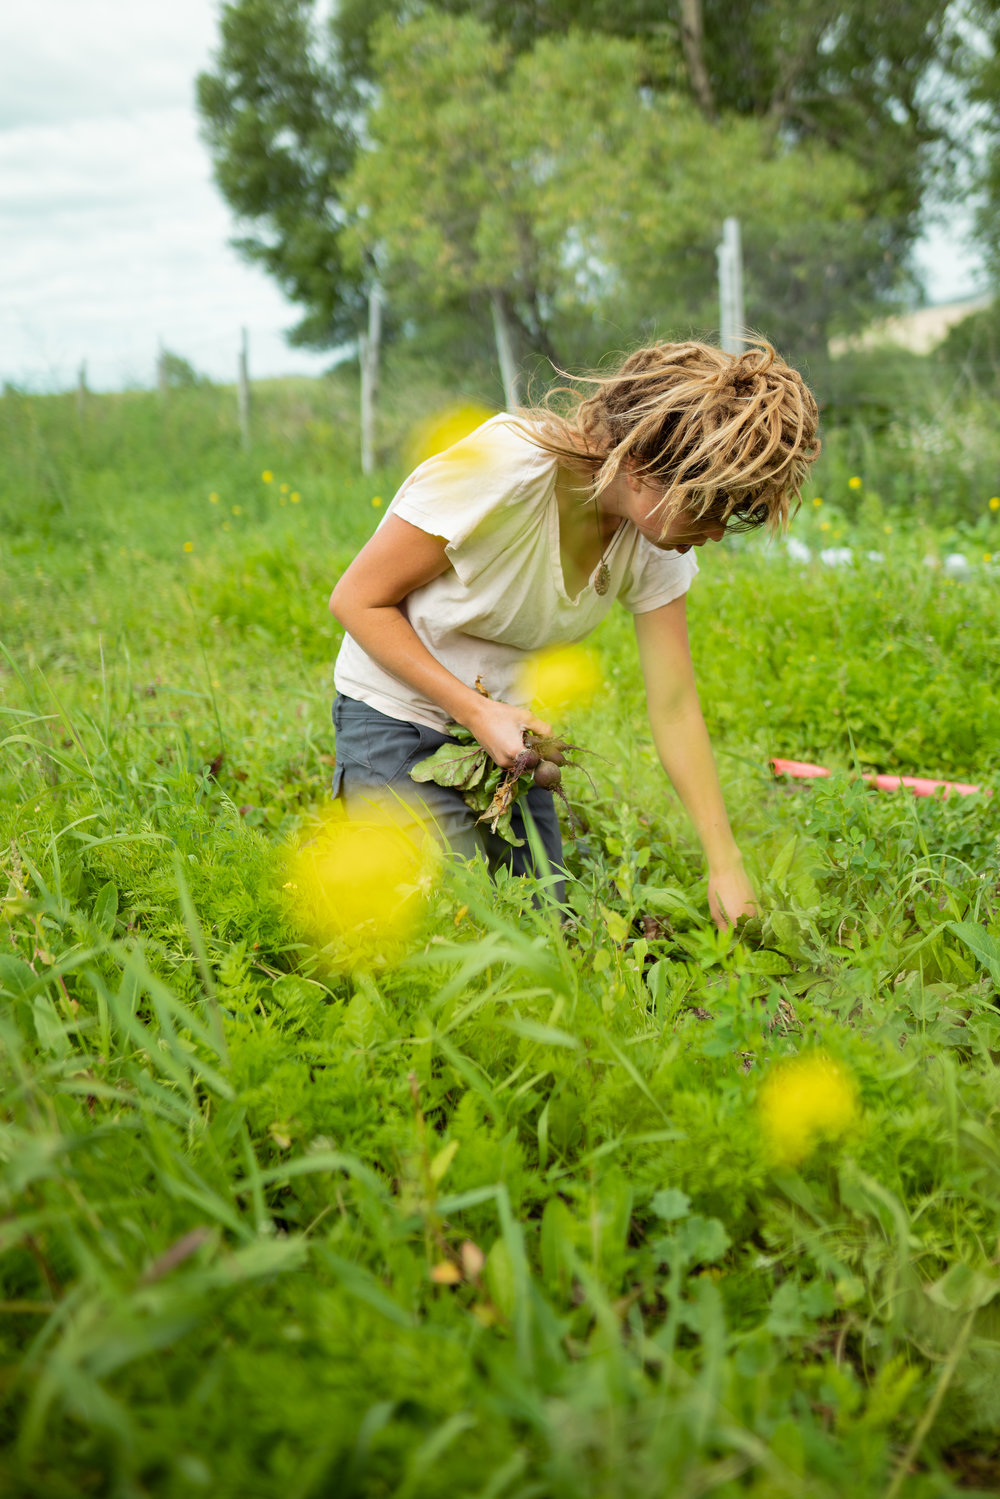 Kacy Senger picking beets at Sprig & Root Farm in Clarkston, Montana.